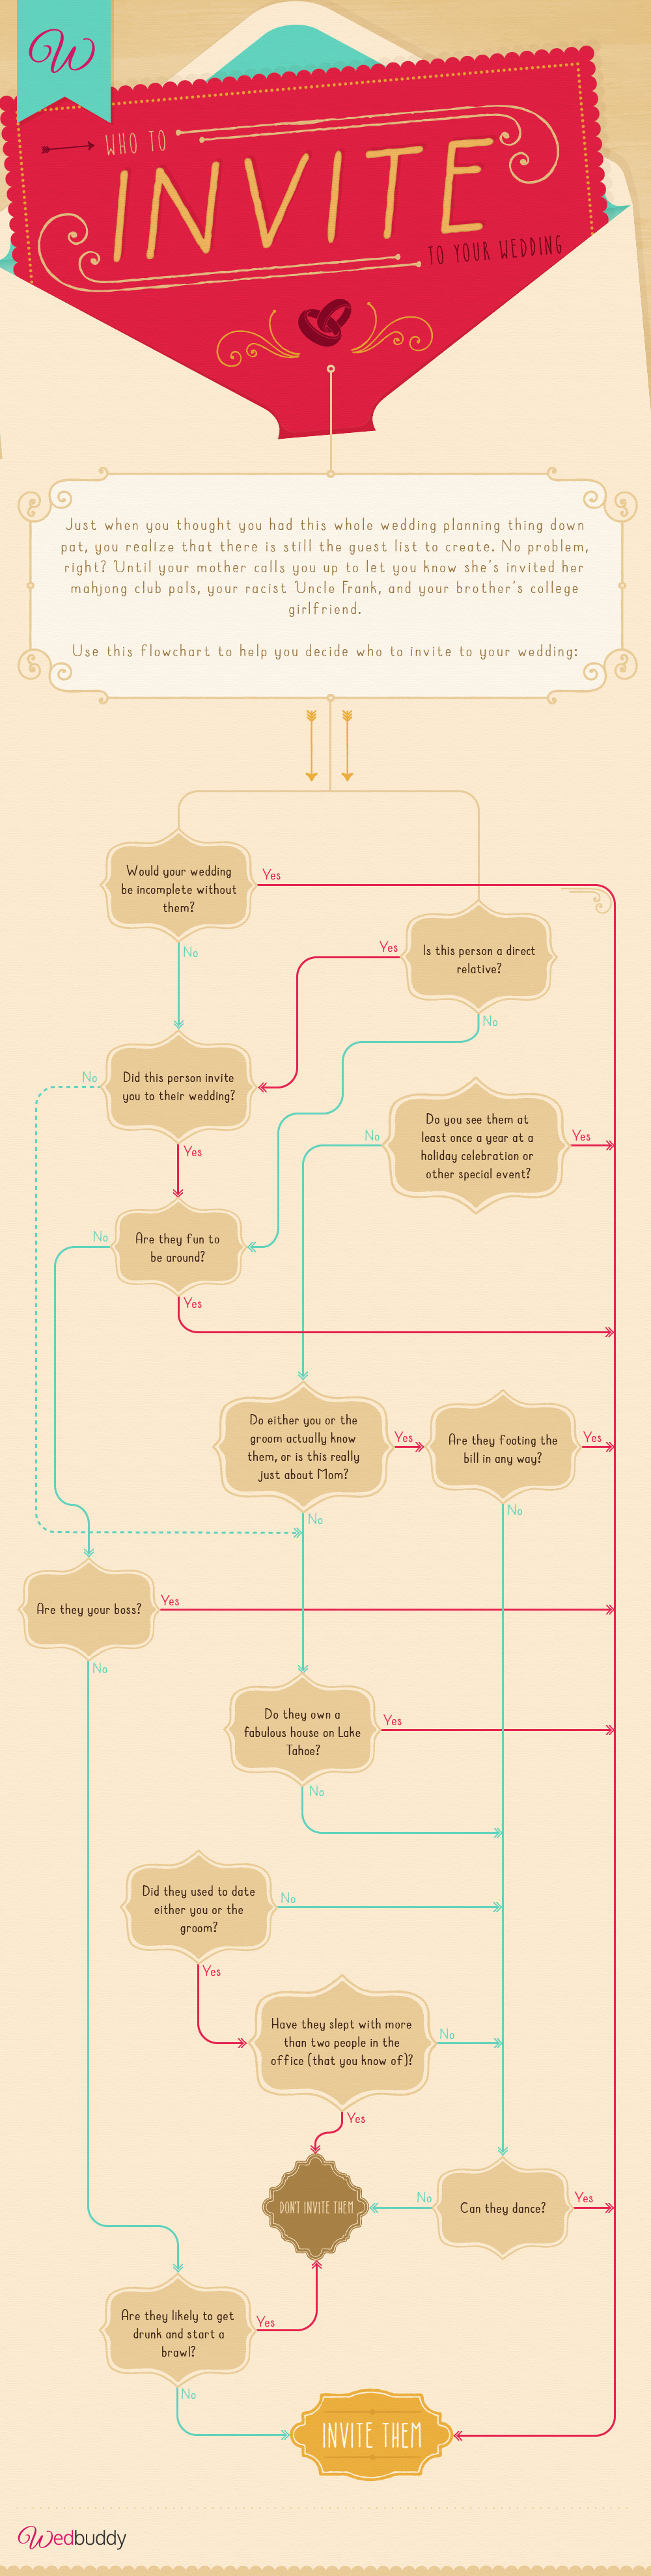 who to invite to your wedding flowchart visually - Who To Invite To Wedding